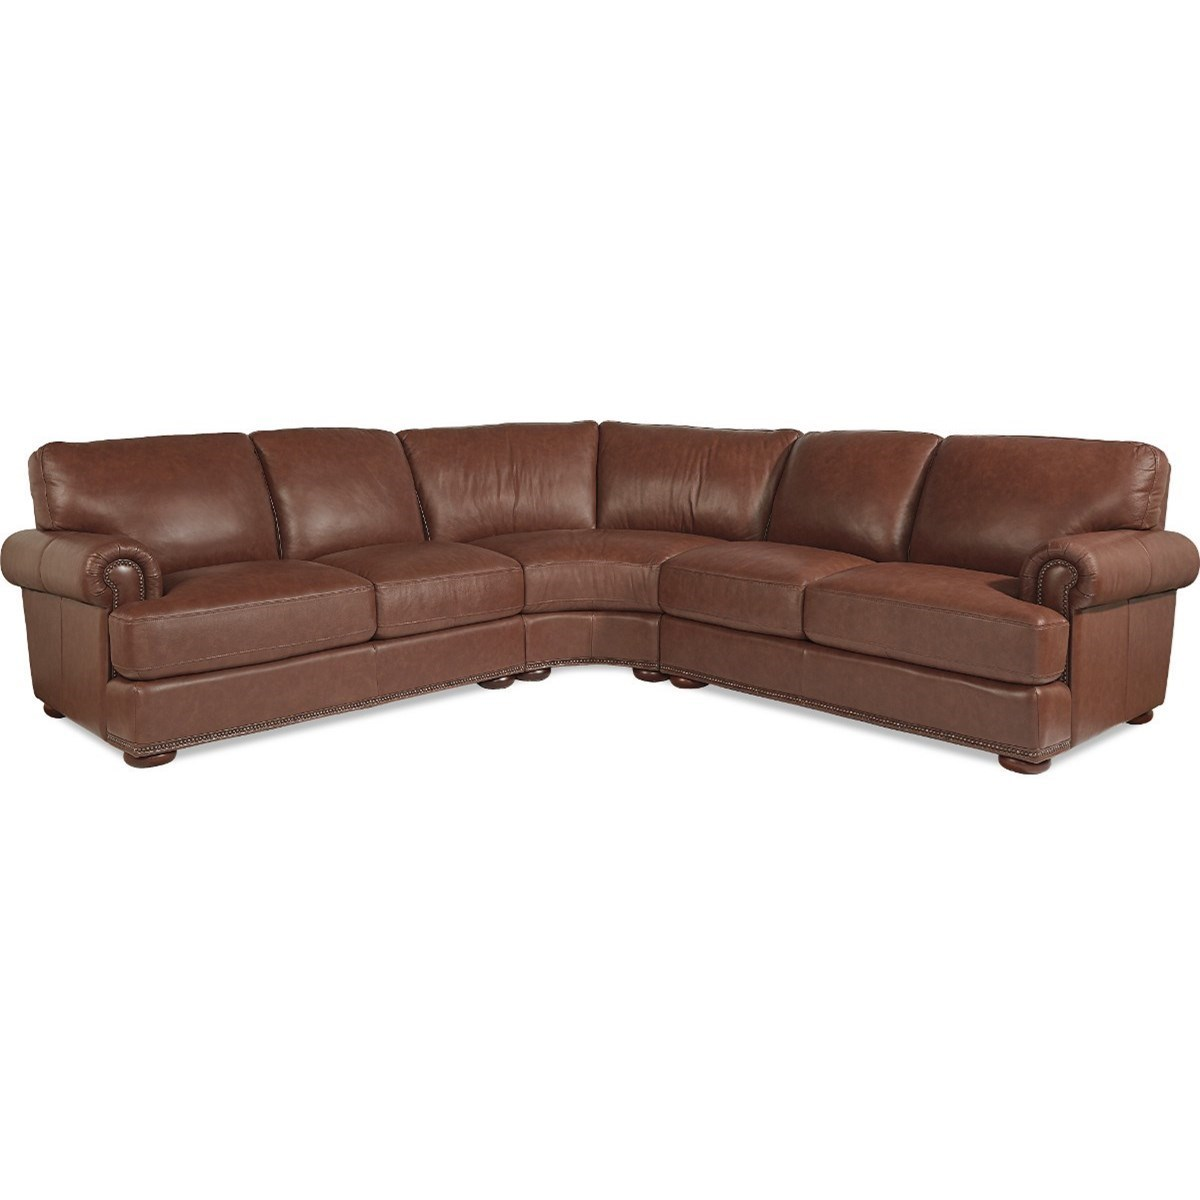 La-Z-Boy Andrew Traditional 3 Piece Sectional with Nailhead Trim - Great American Home Store - Sofa Sectional  sc 1 st  Great American Home Store : sectional lazy boy - Sectionals, Sofas & Couches